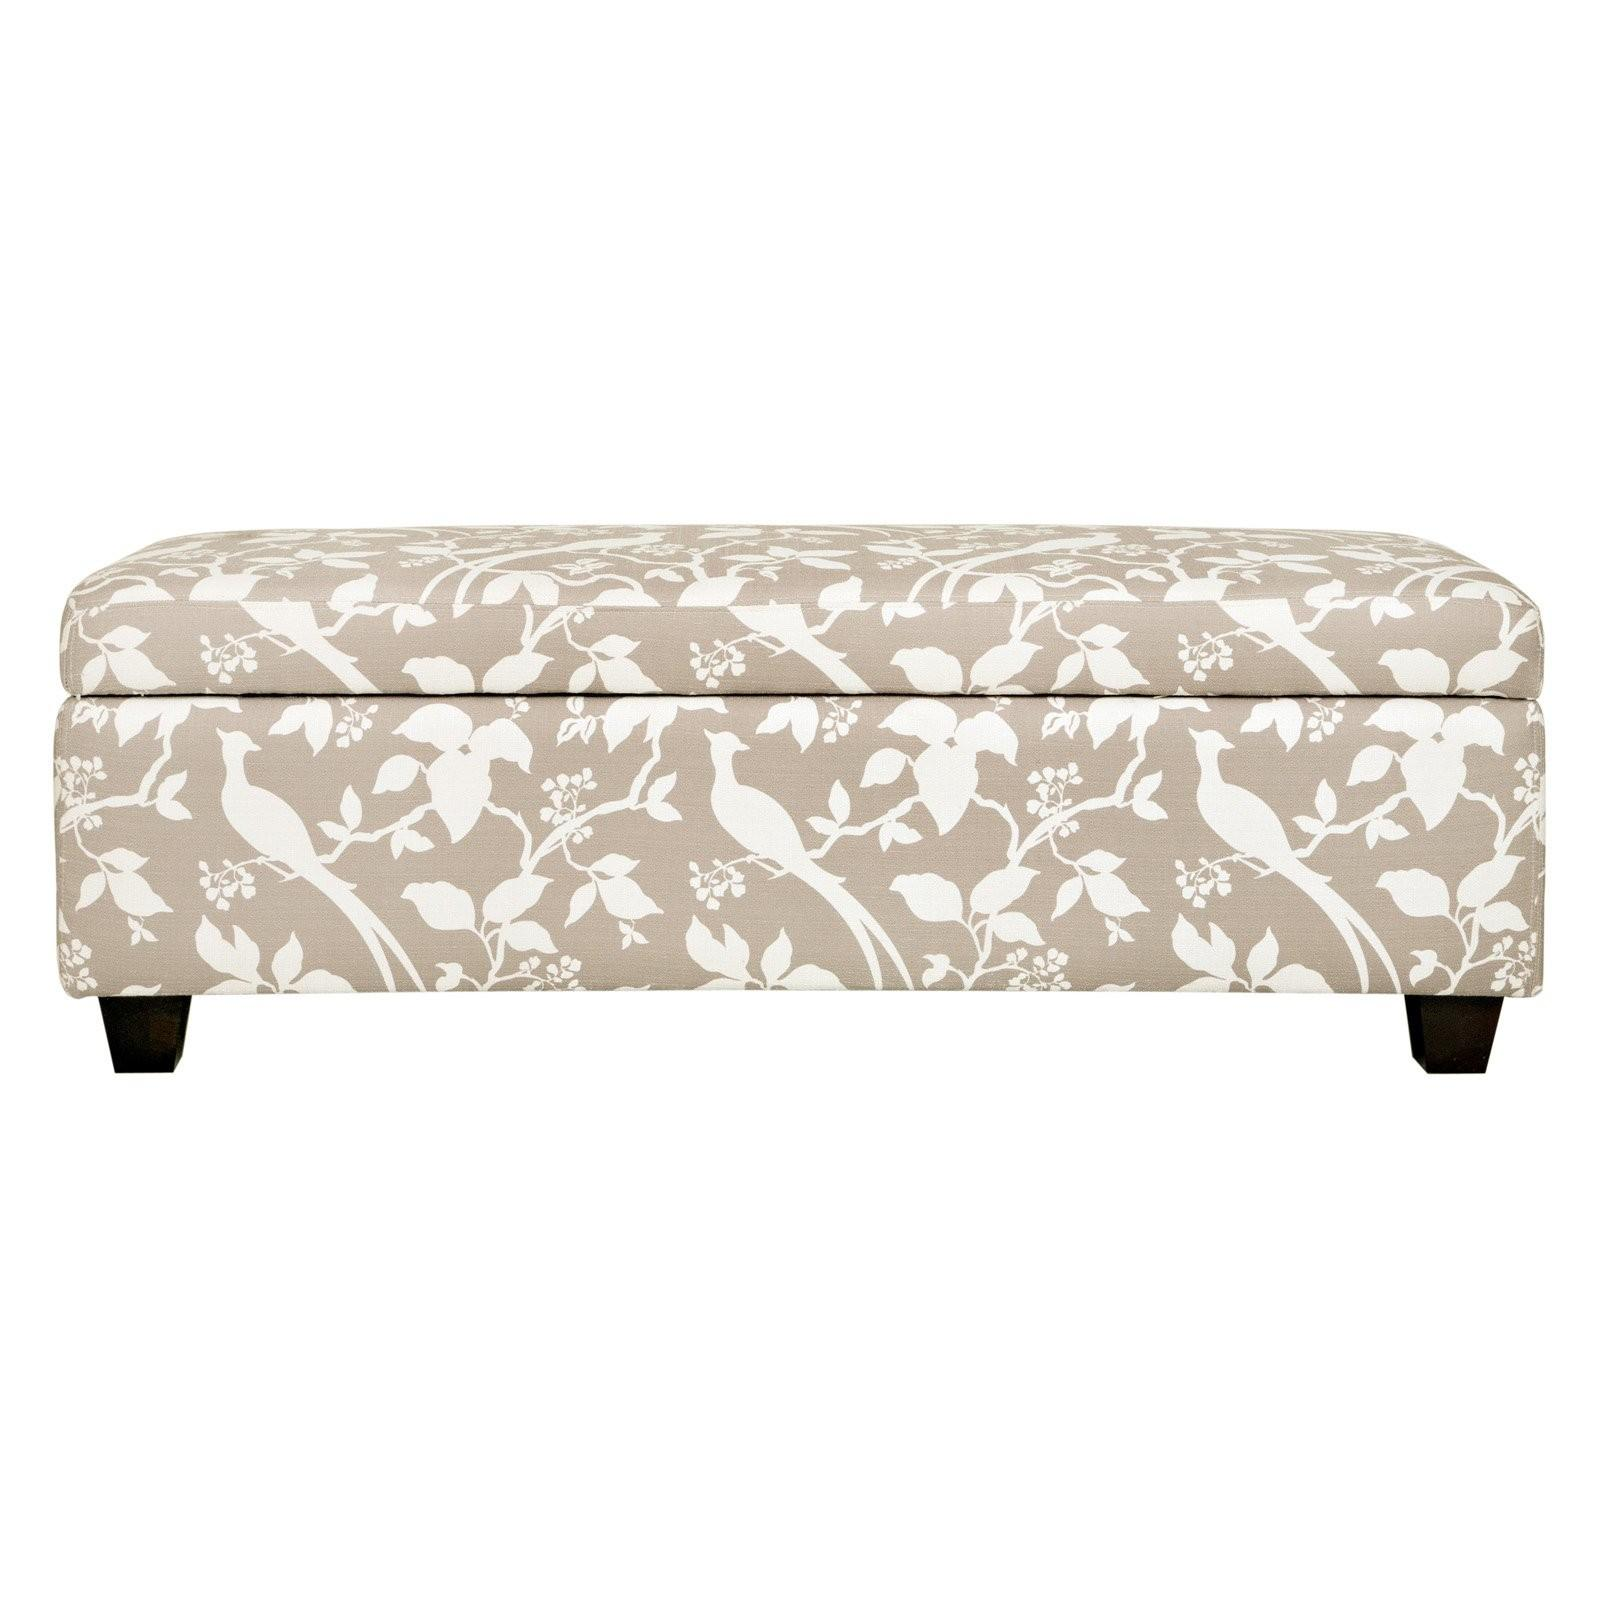 Beautiful Bedroom Ottomans Benches Inspiring Furniture